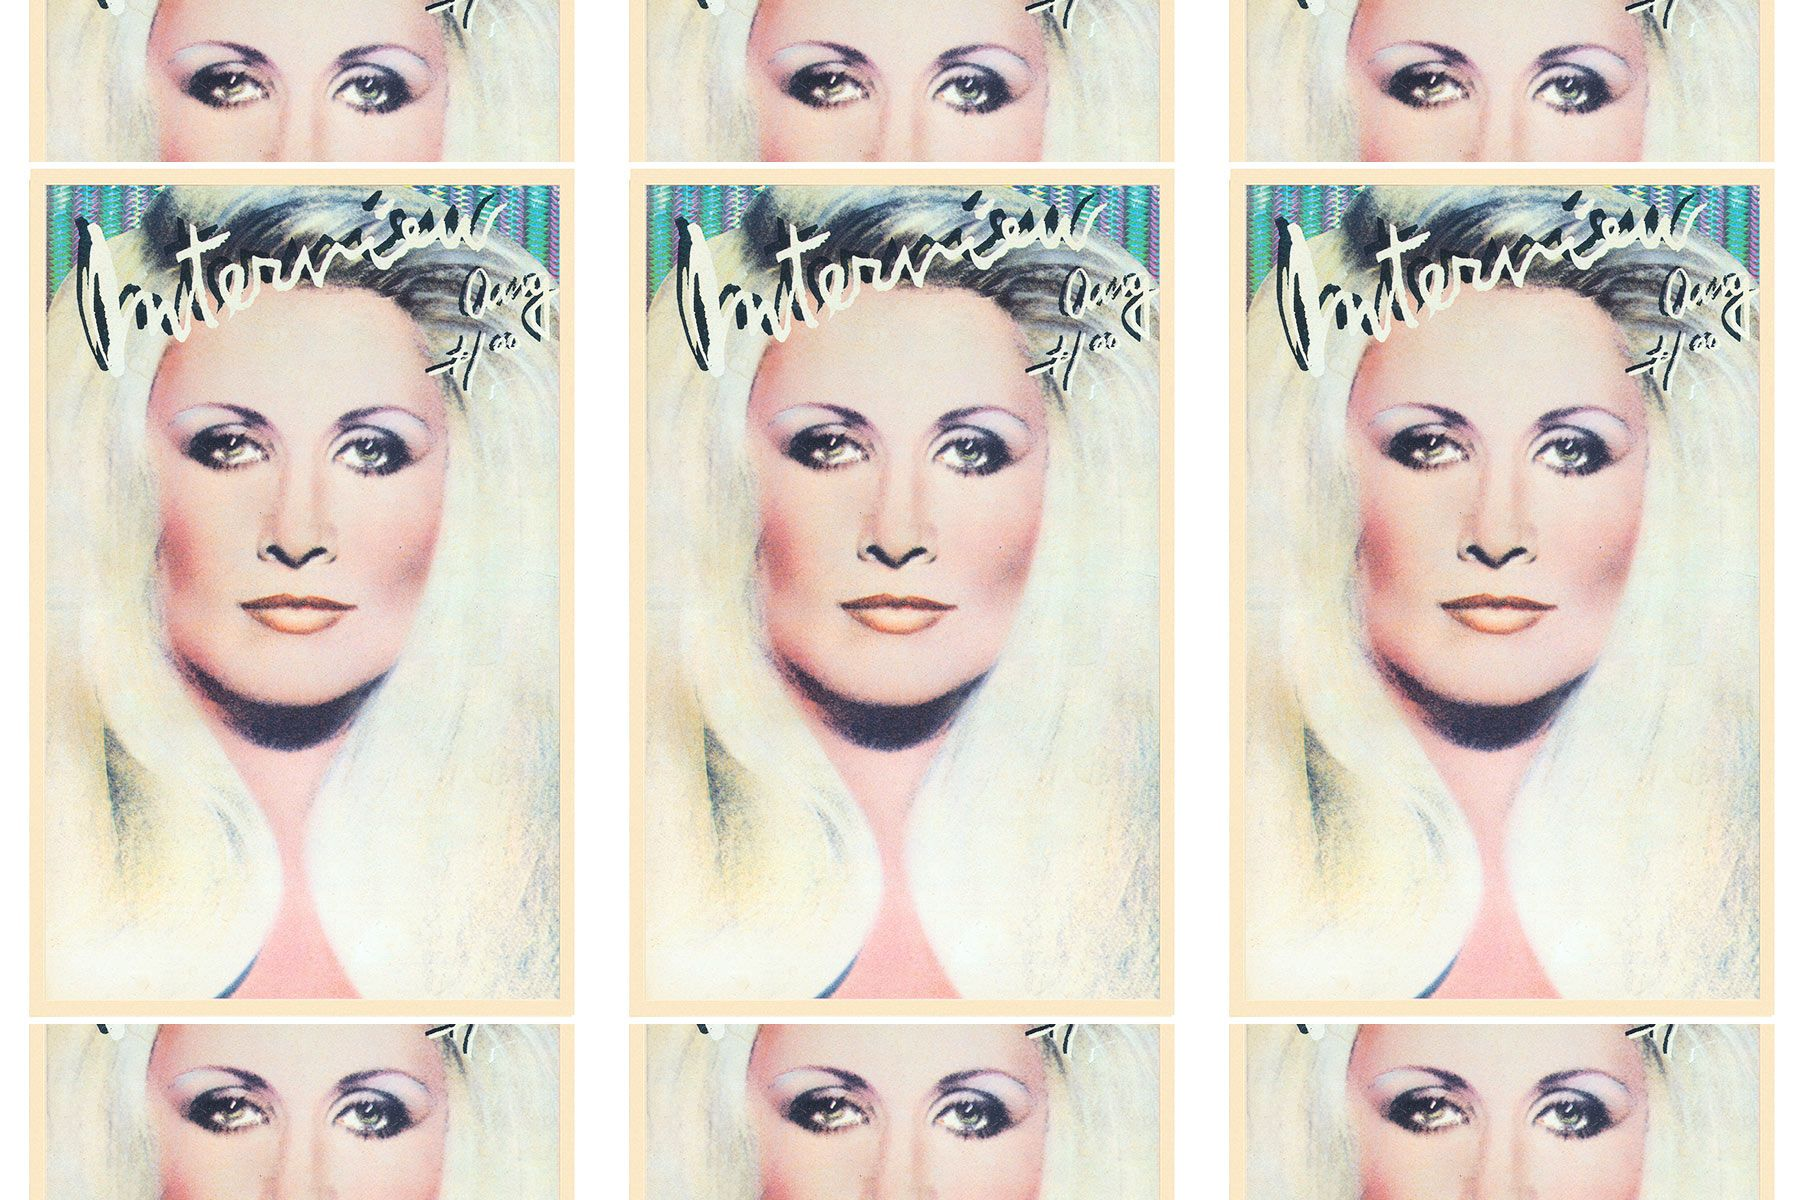 Baby Jane Holzer Interview magazine cover by Richard Bernstein. Starmaker by Roger Padhila & Mauricio Padhila. Rizzoli Books. Ponyboy magazine.